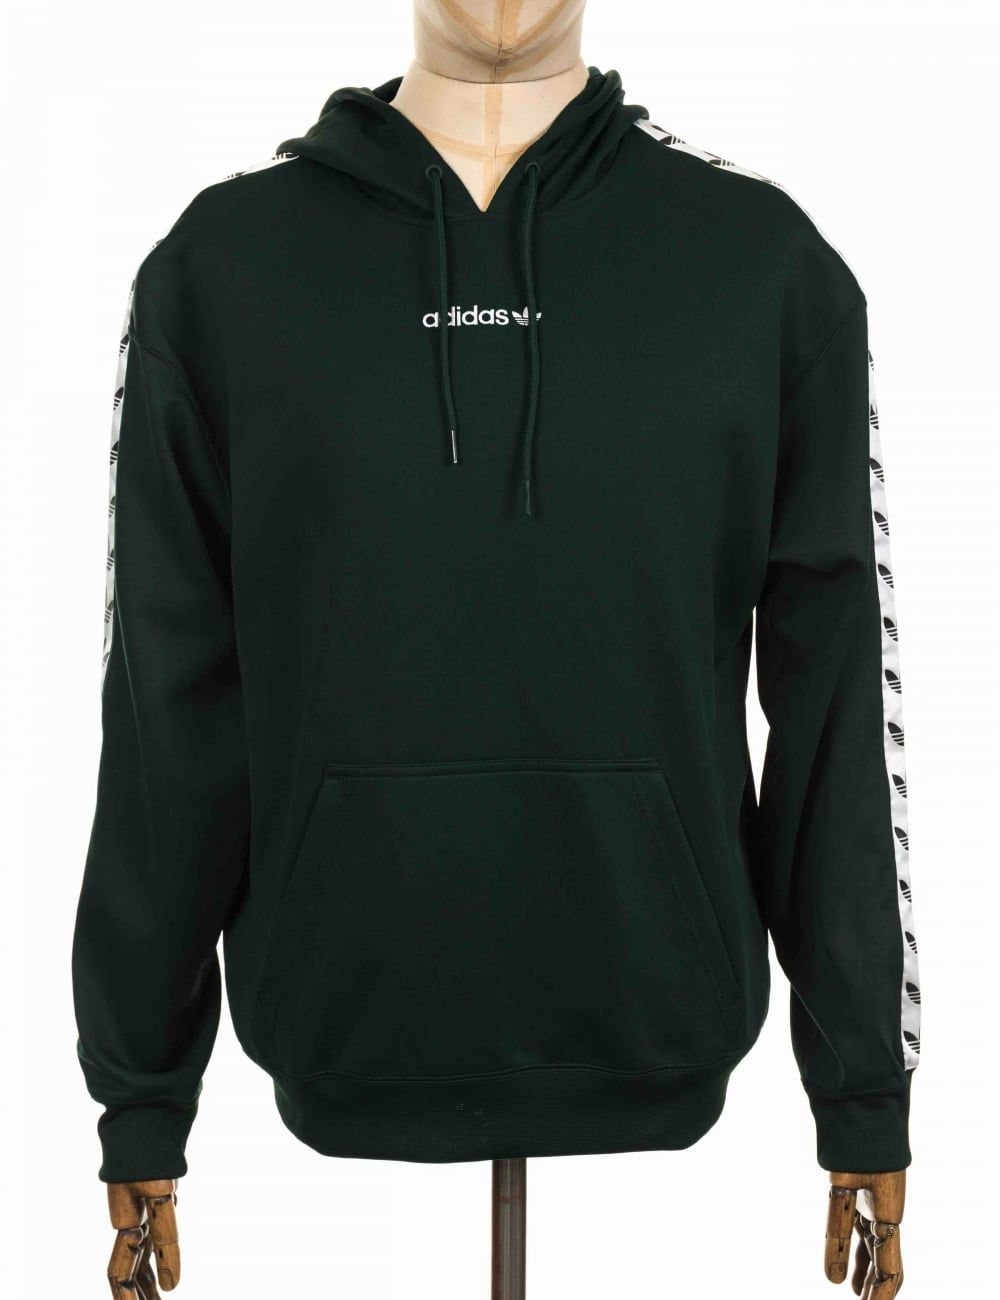 4c639cce5f TNT Tape Hooded Sweatshirt - Green Night/White